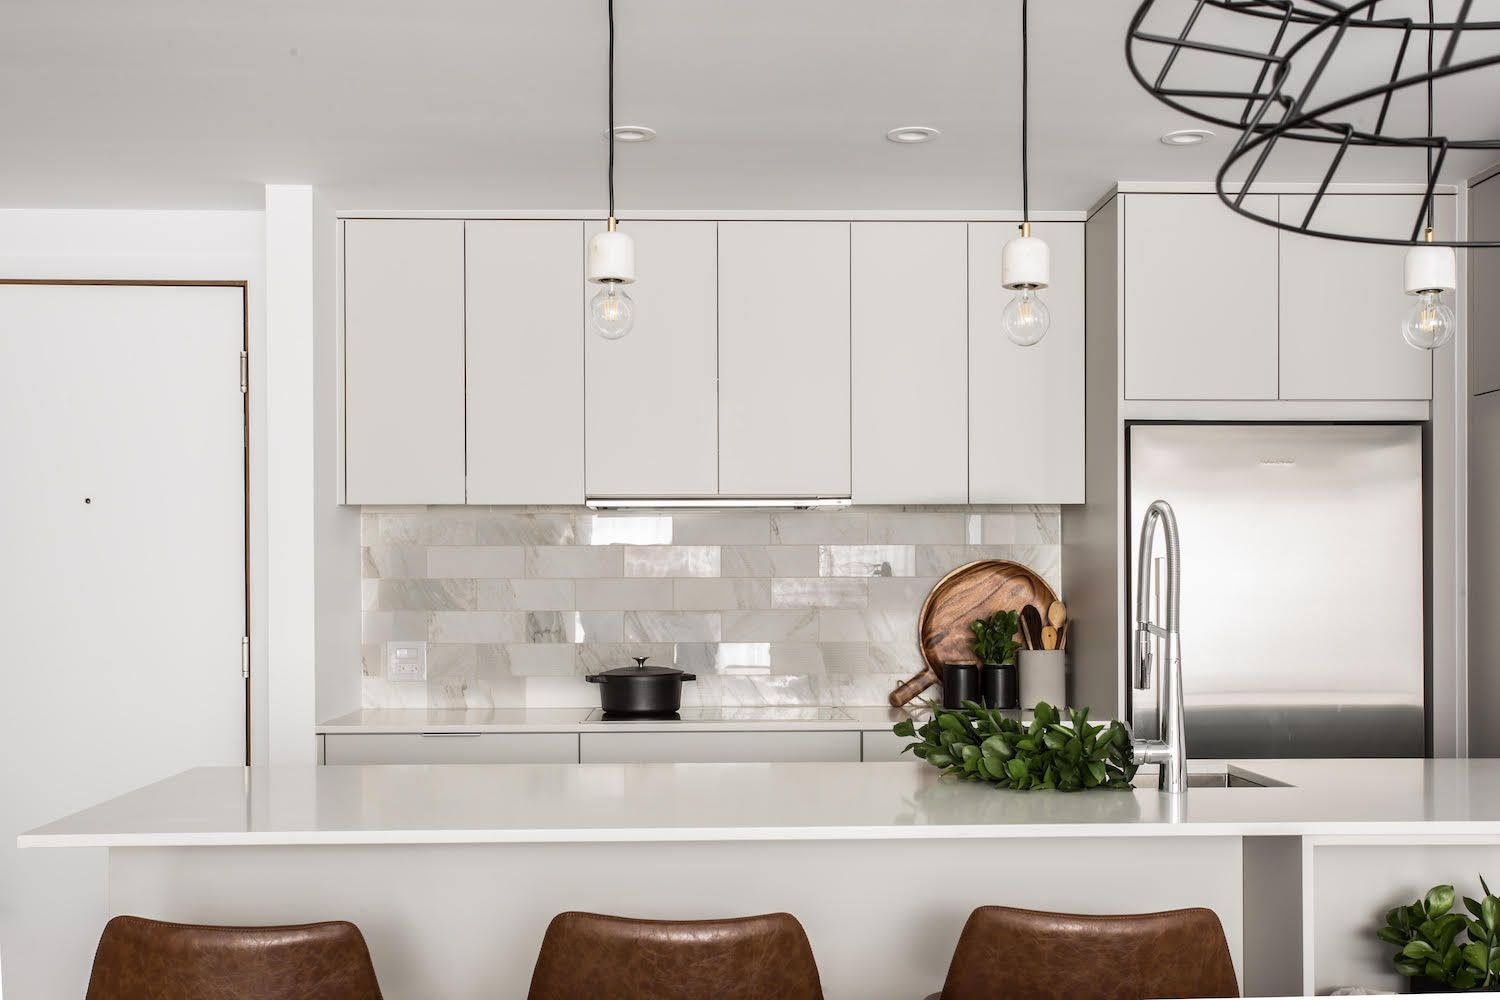 Kitchen with light gray cabinets